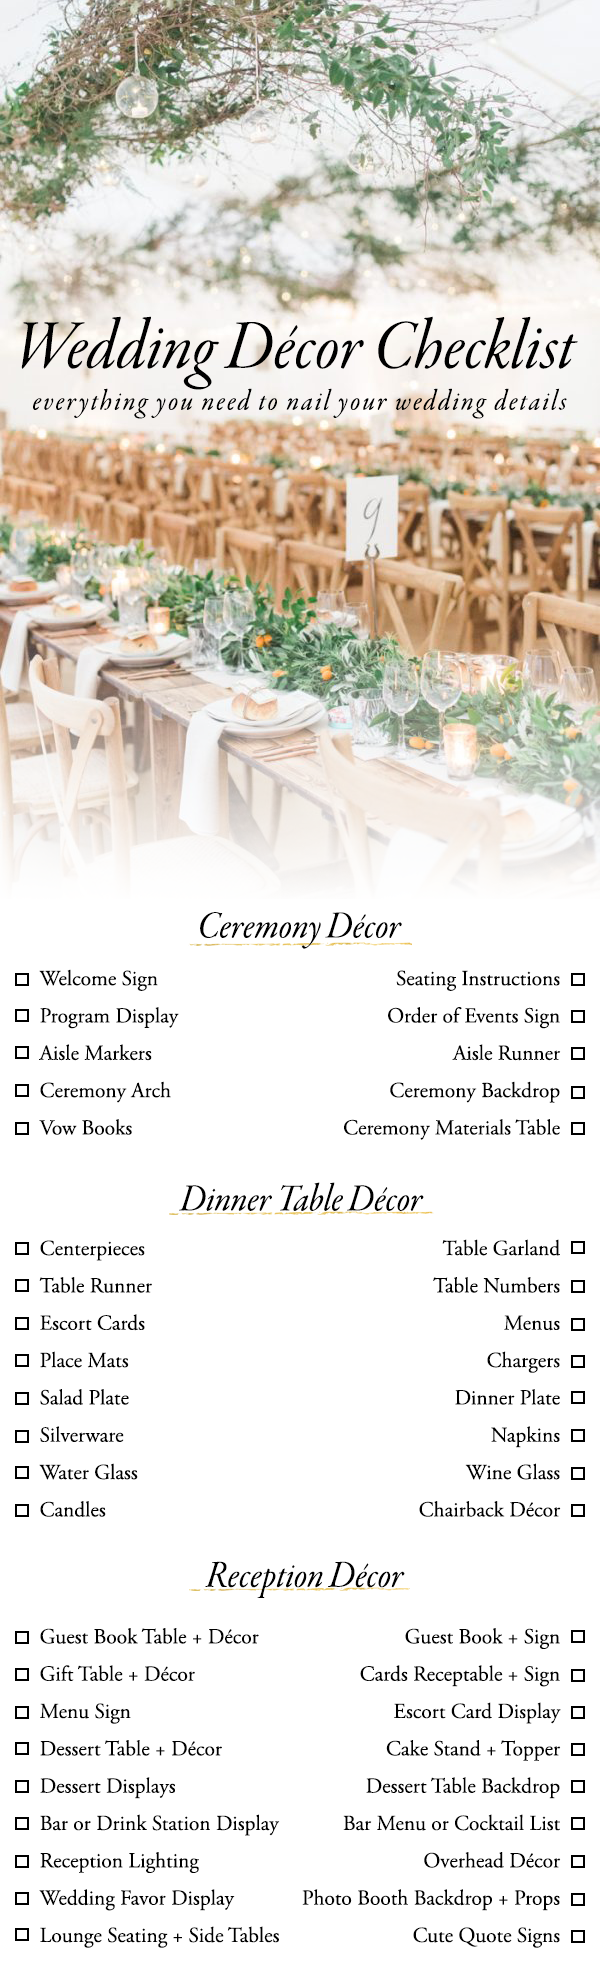 Use This Wedding Dcor Checklist To Help You Nail Every Detail